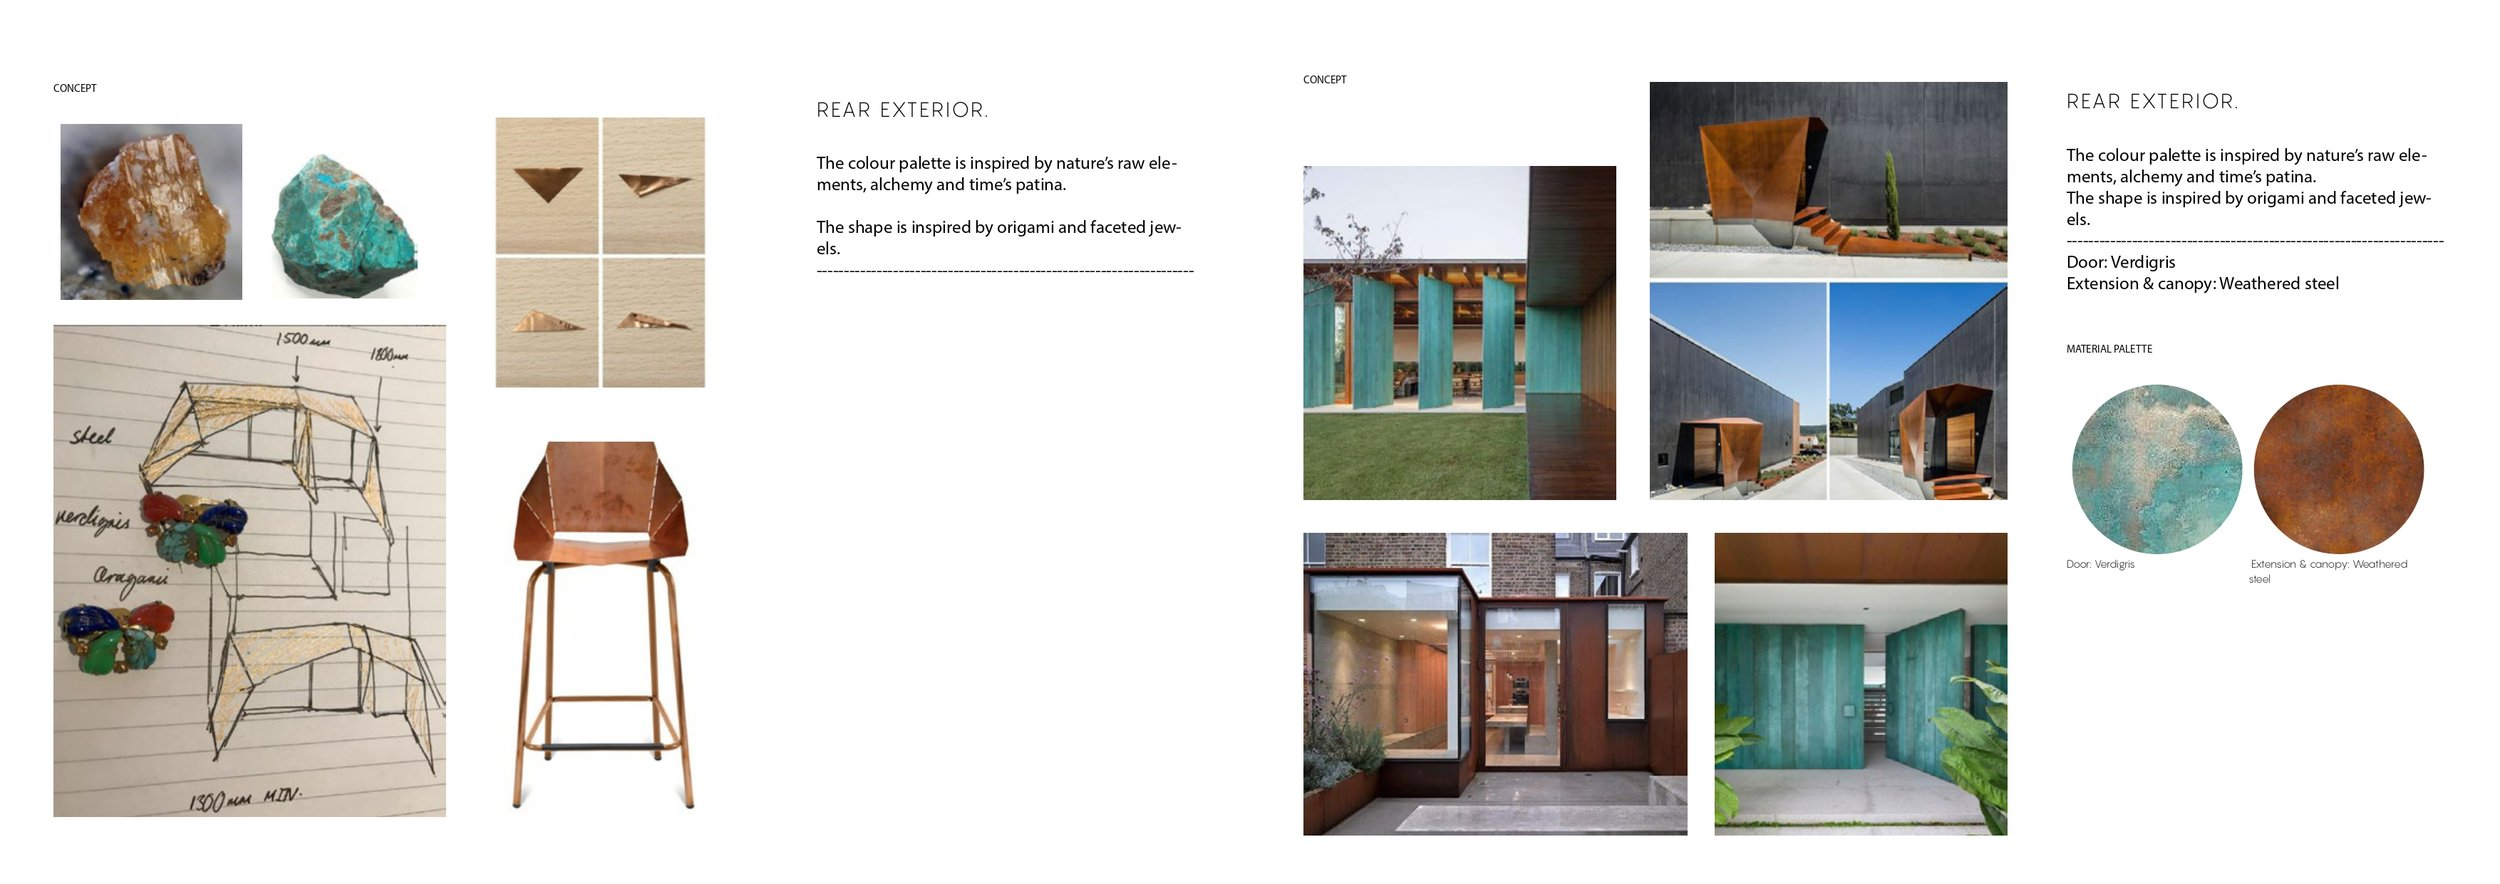 Extension Concept- Artistic & Iconic _page-0003.jpg